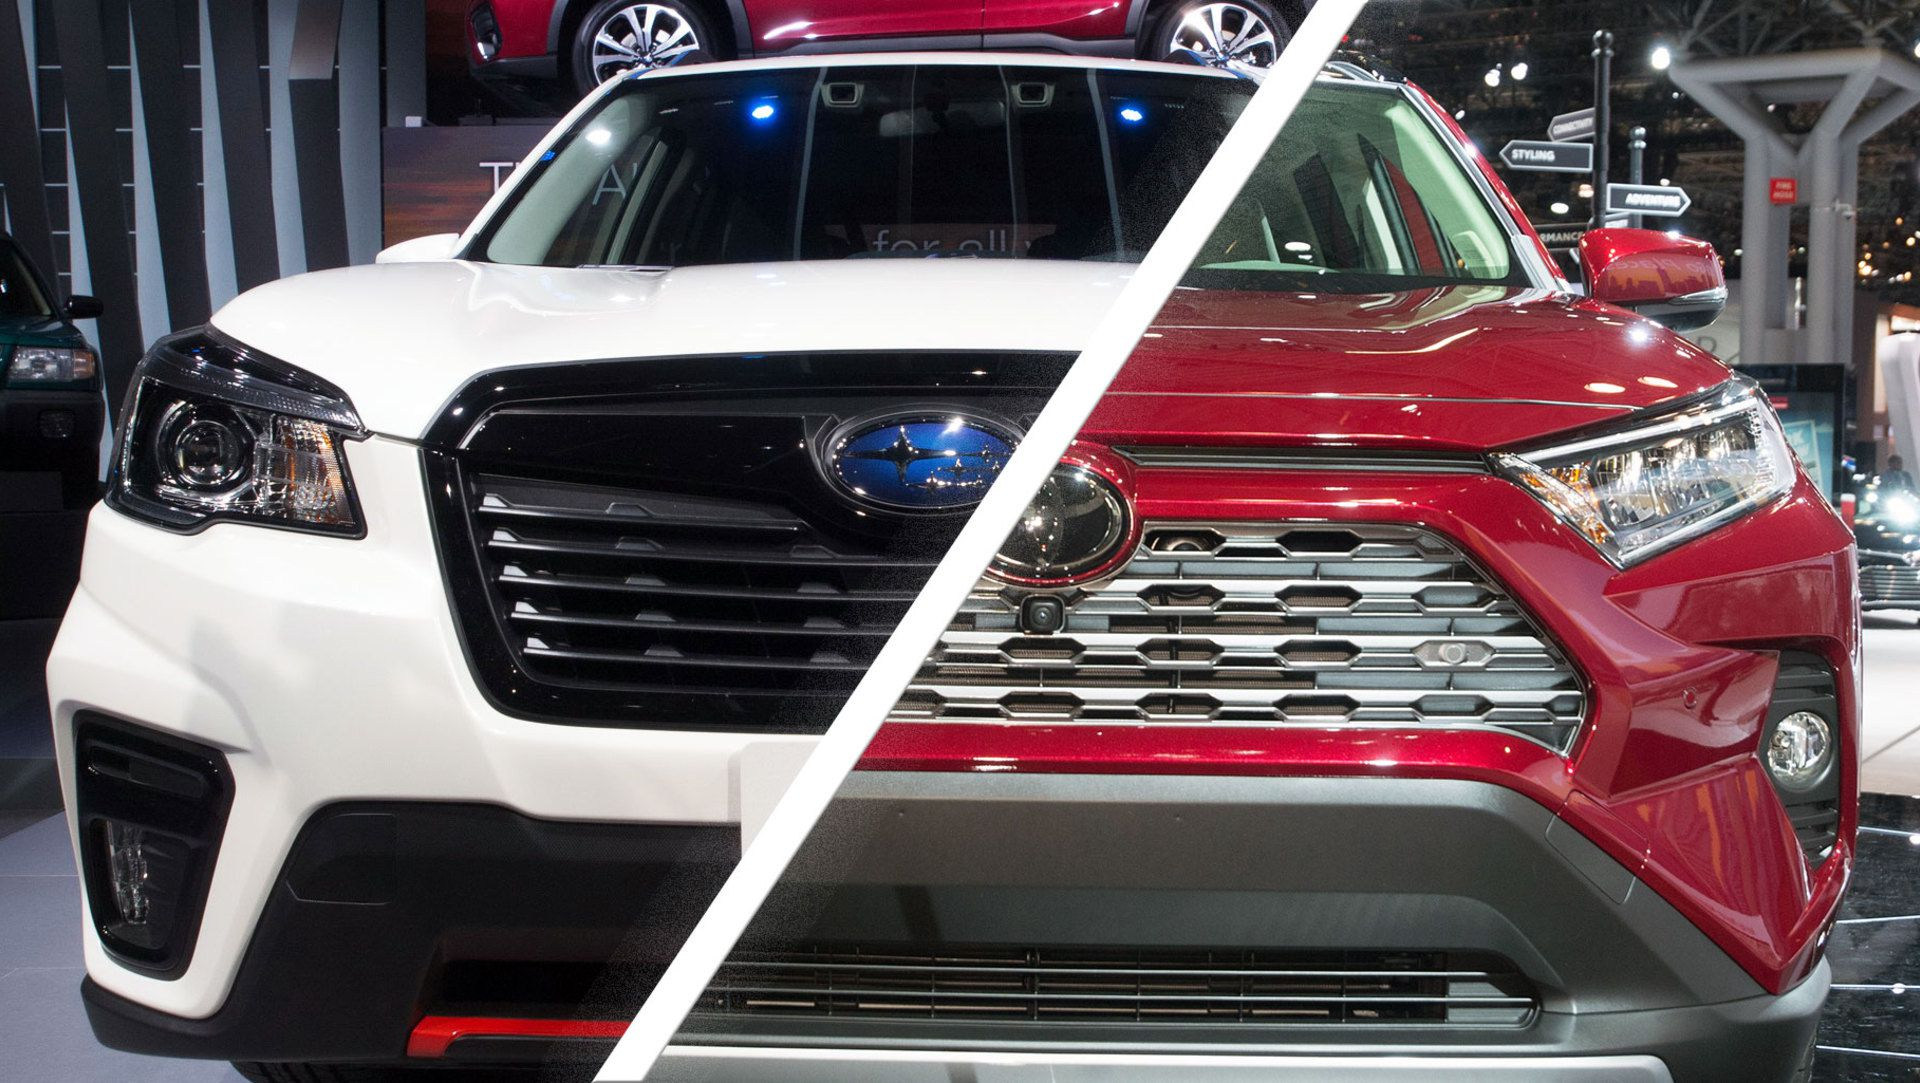 2019 Toyota Rav4 Vs Subaru Forester What Rugged Suv Would You